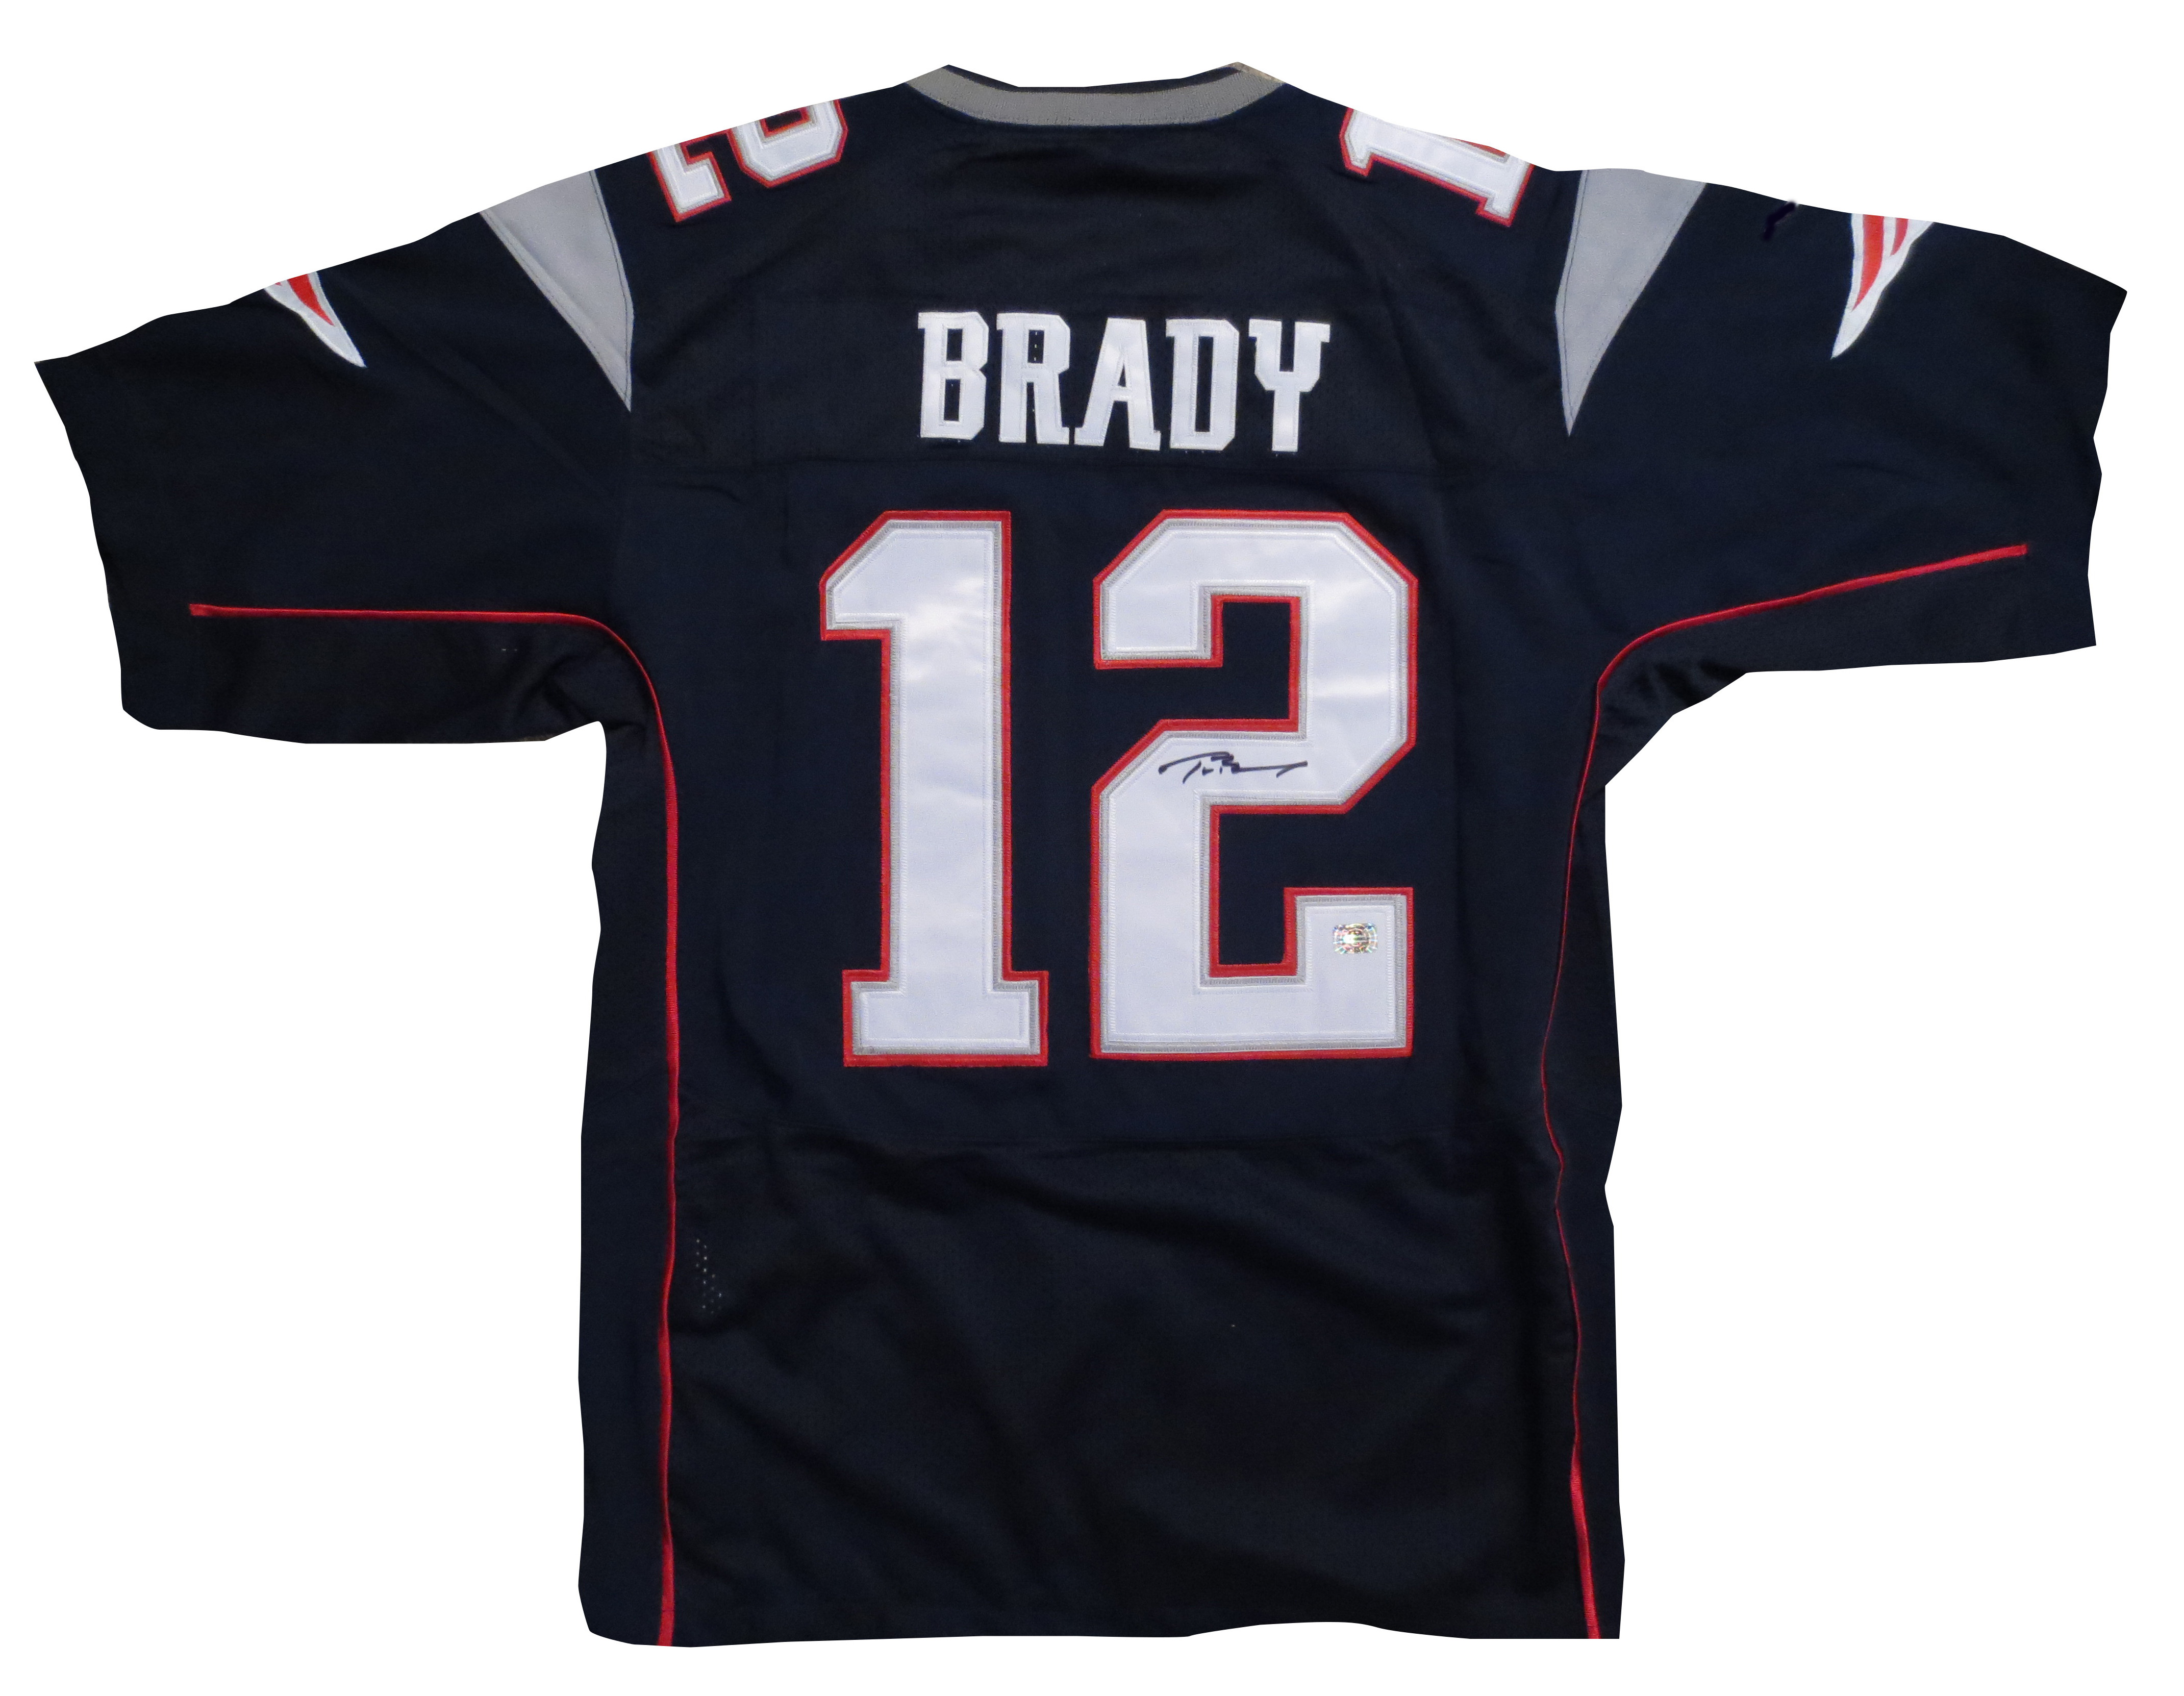 Tom Brady Autographed Patriots Jersey from Powers Autograhs